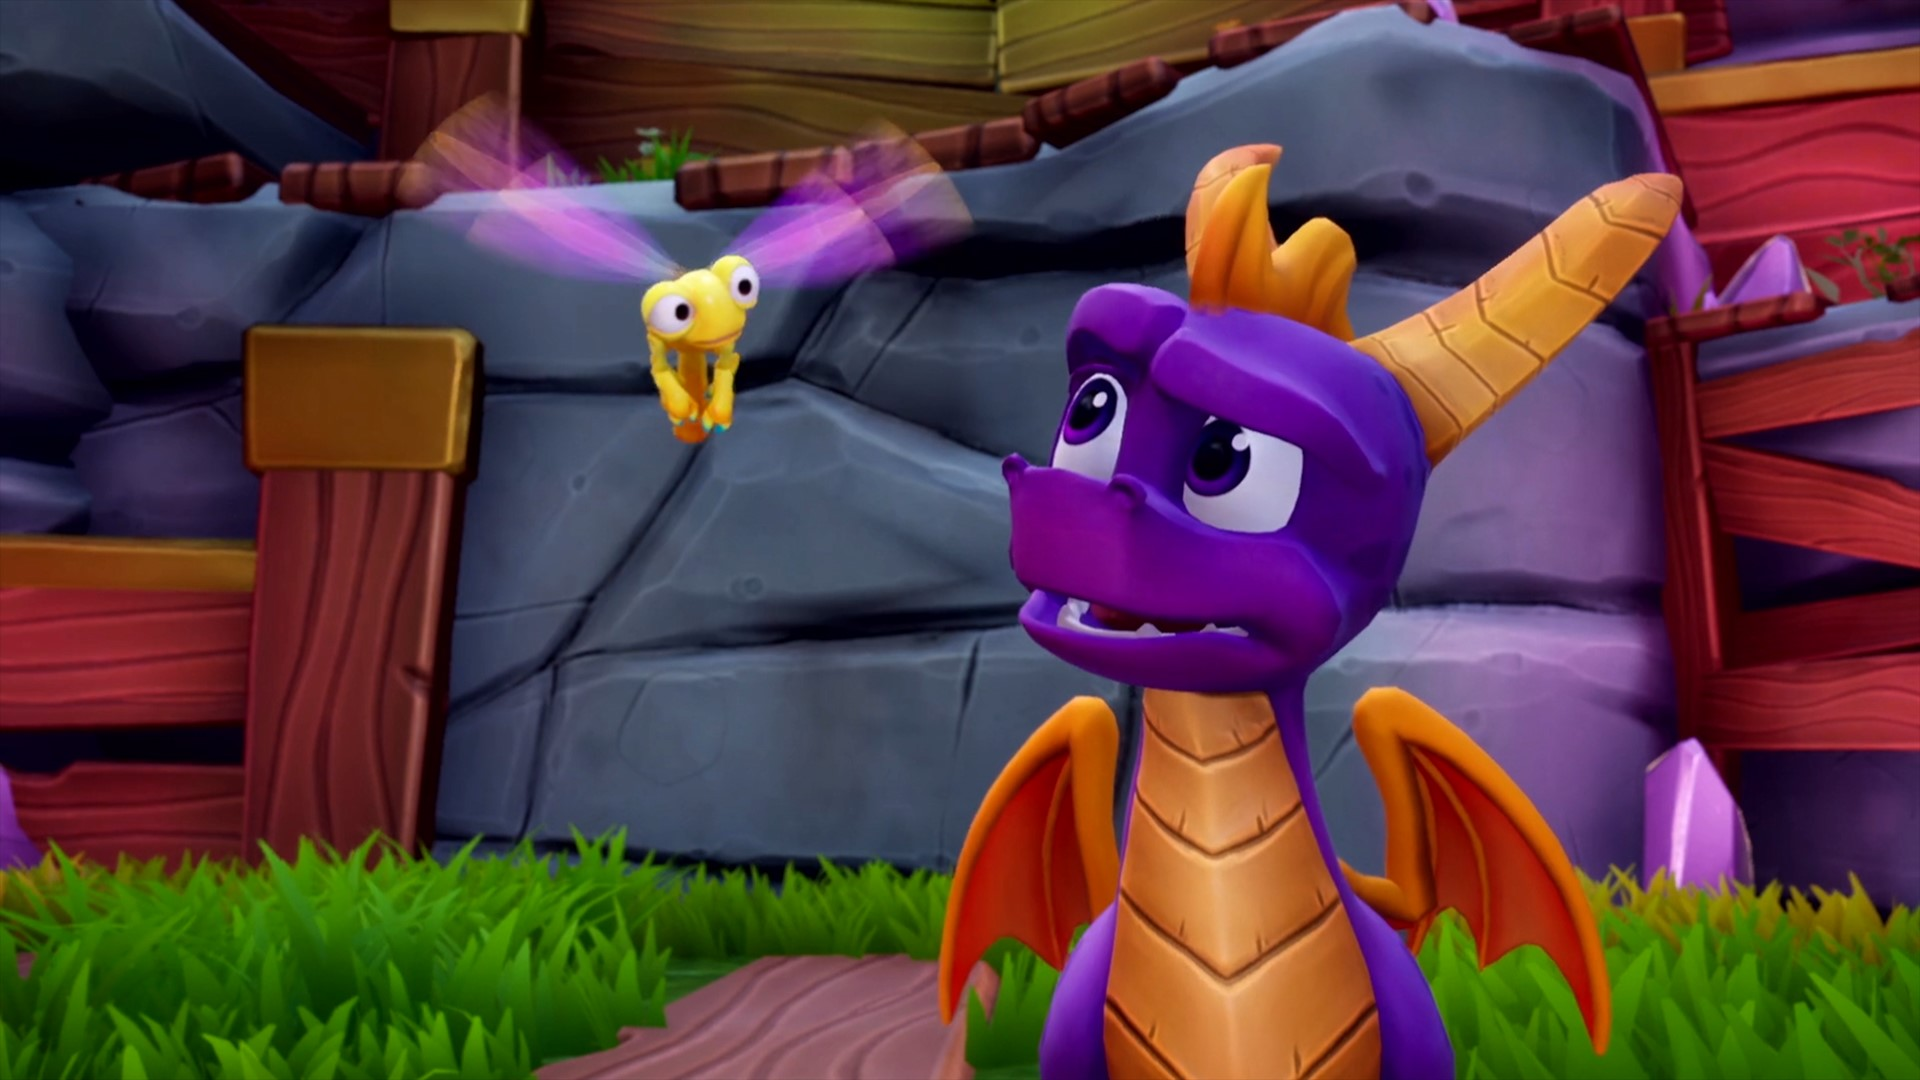 The Art of Spyro Reignited Trilogy